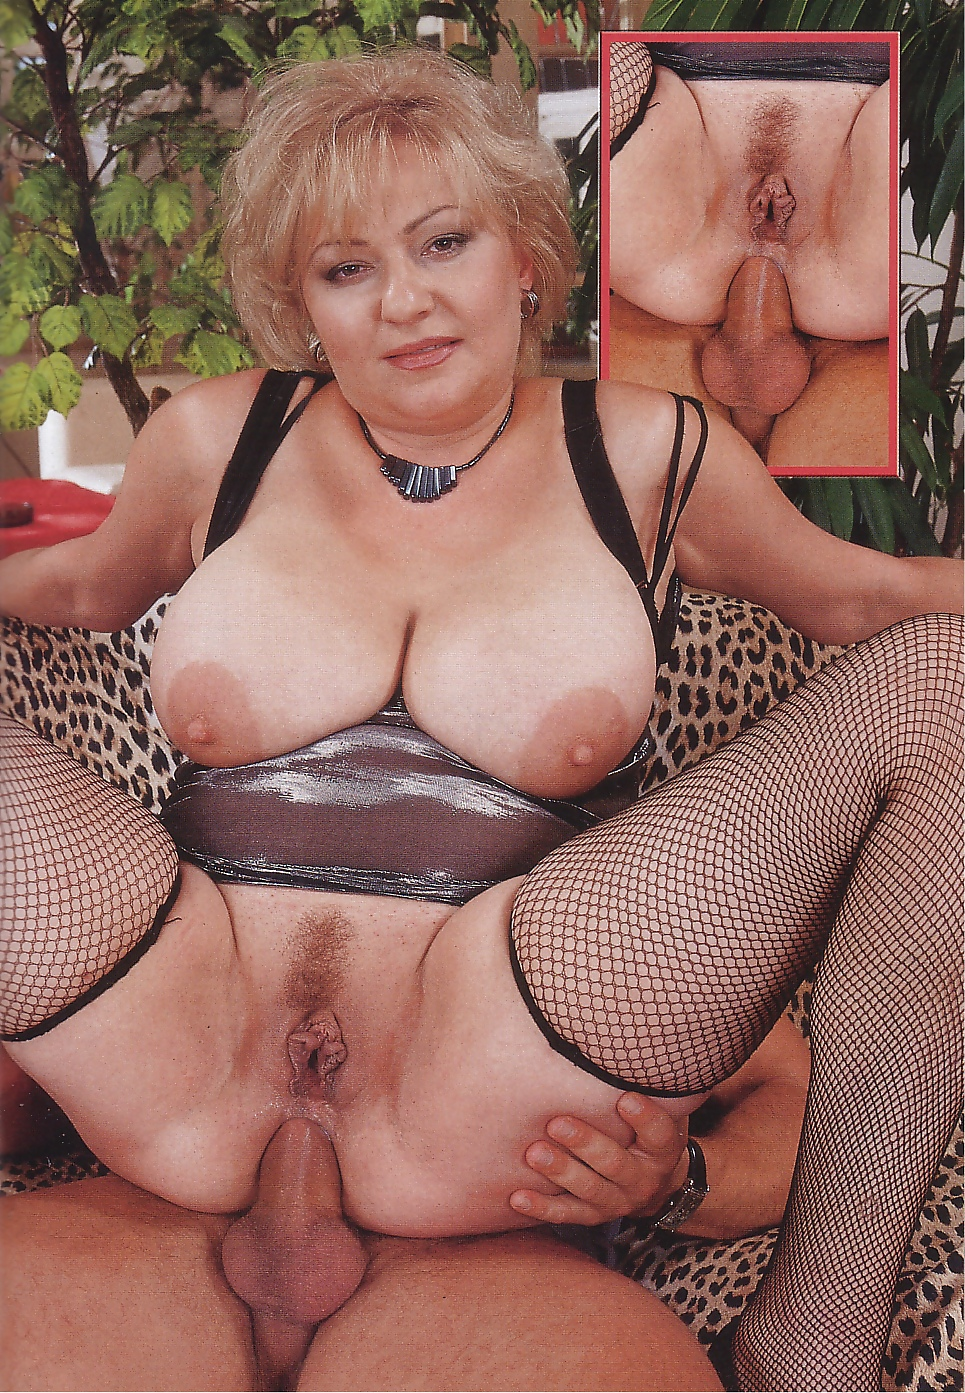 buy-dvds-german-mature-xxx-young-virgin-girls-naked-pictures